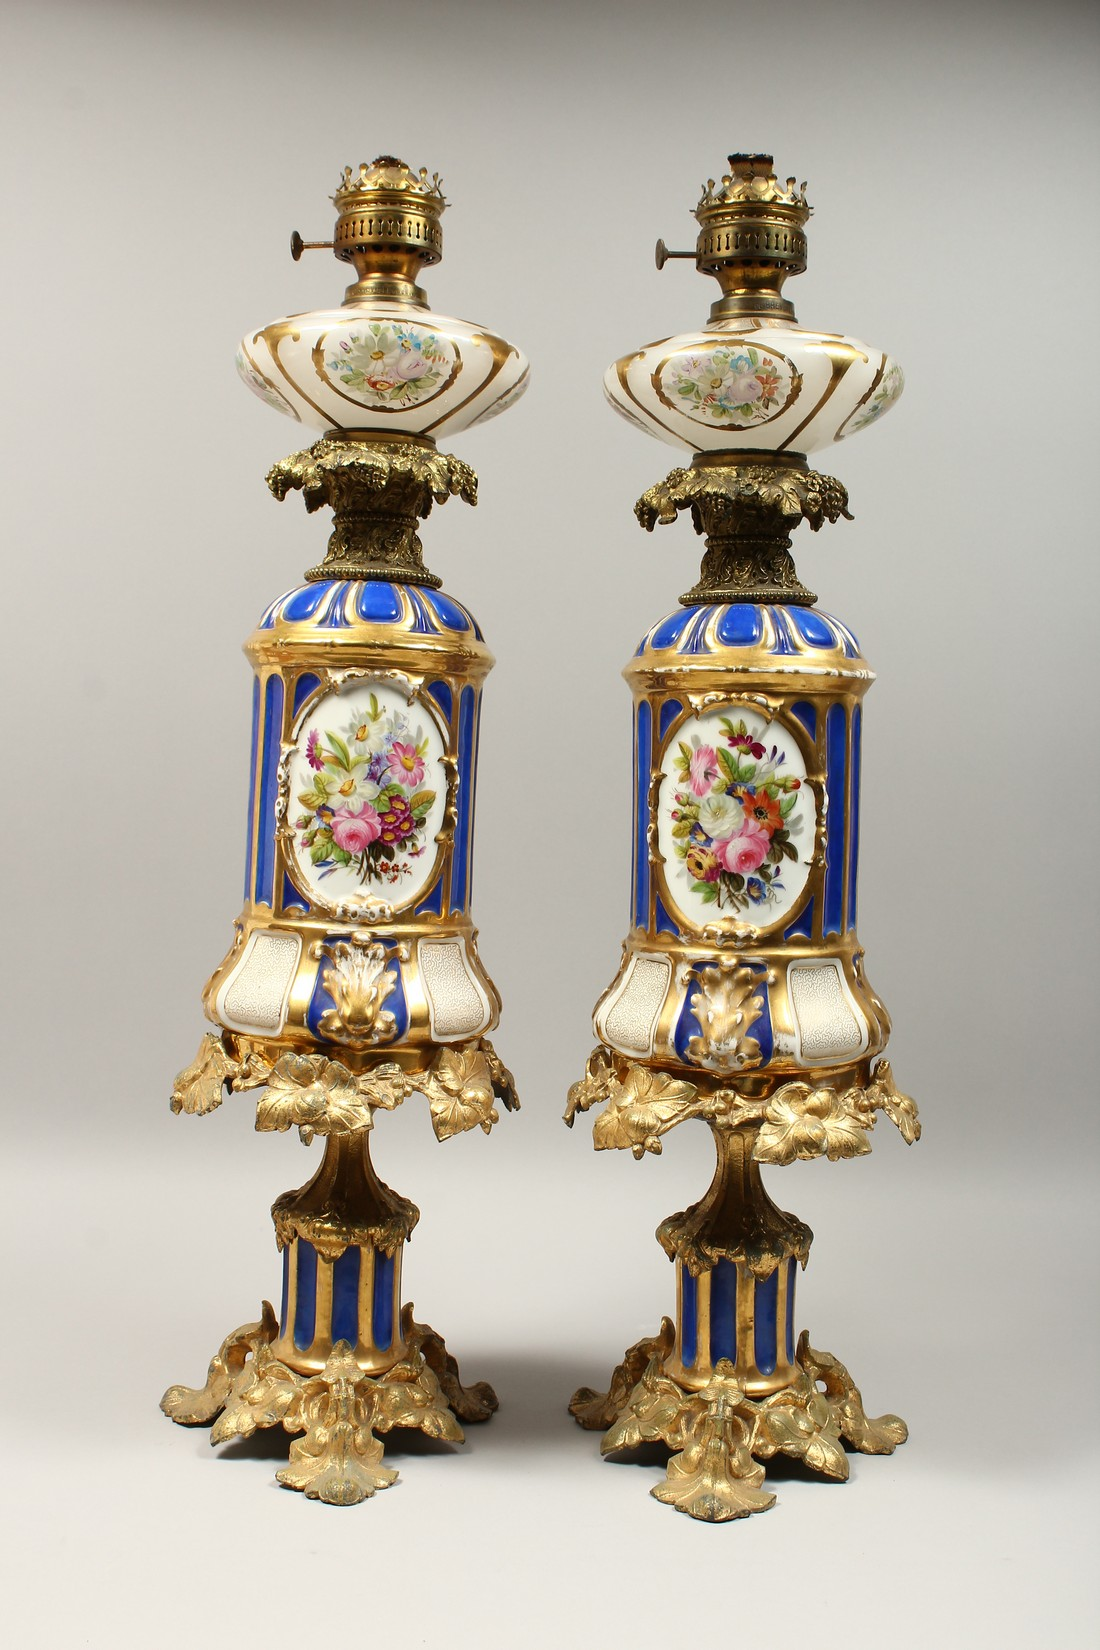 A SUPERB PAIR OF 19TH CENTURY FRENCH PORCELAIN AND GILT BRONZE LAMPS ON STANDS, painted with - Image 11 of 24